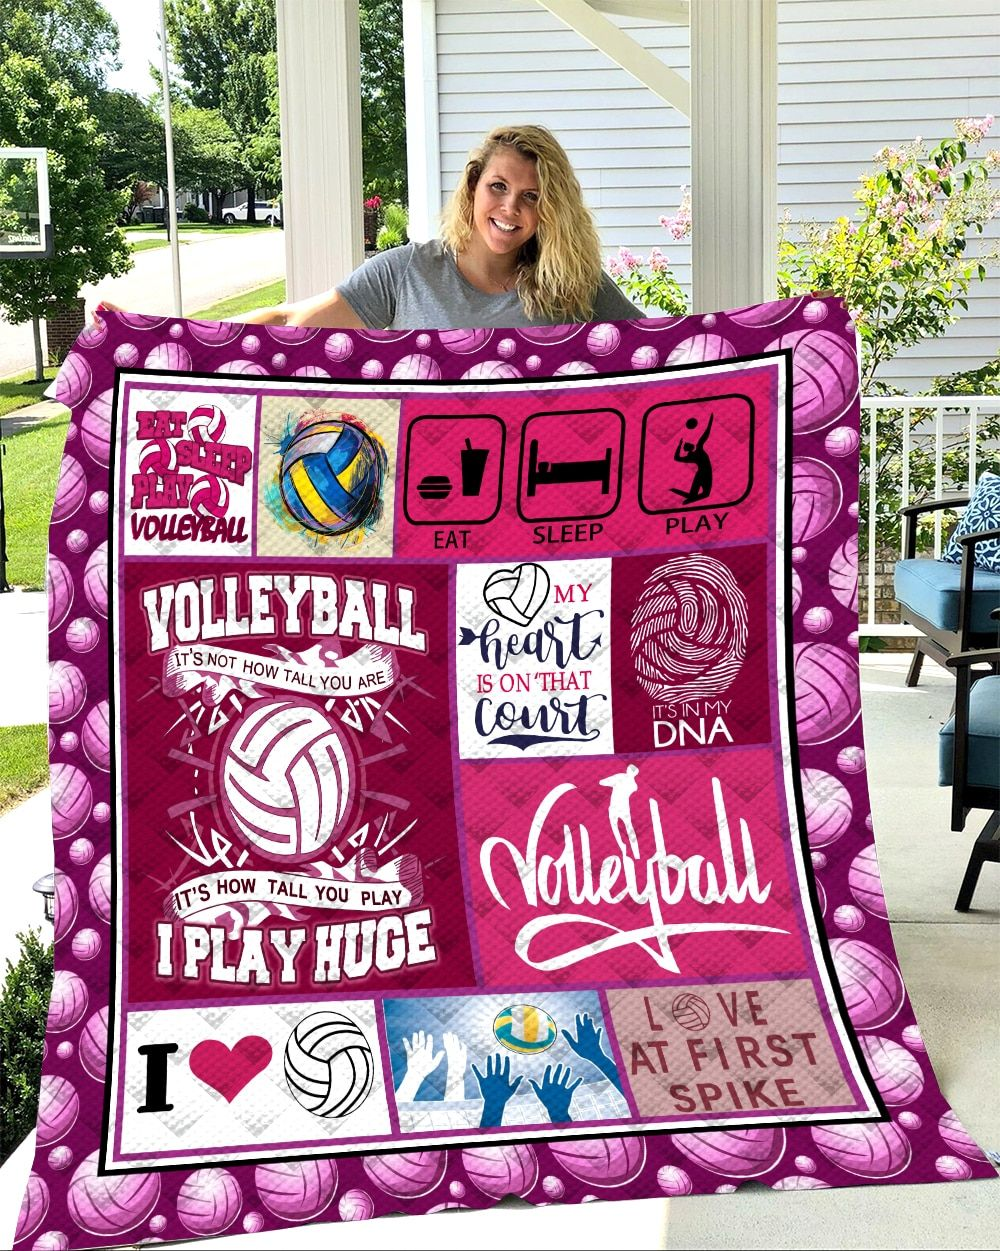 Softbatfy Volleyball Quilt Blanket For Bed Soft Dropshipping In 2020 Quilt Blanket Quilt Bedding Quilts